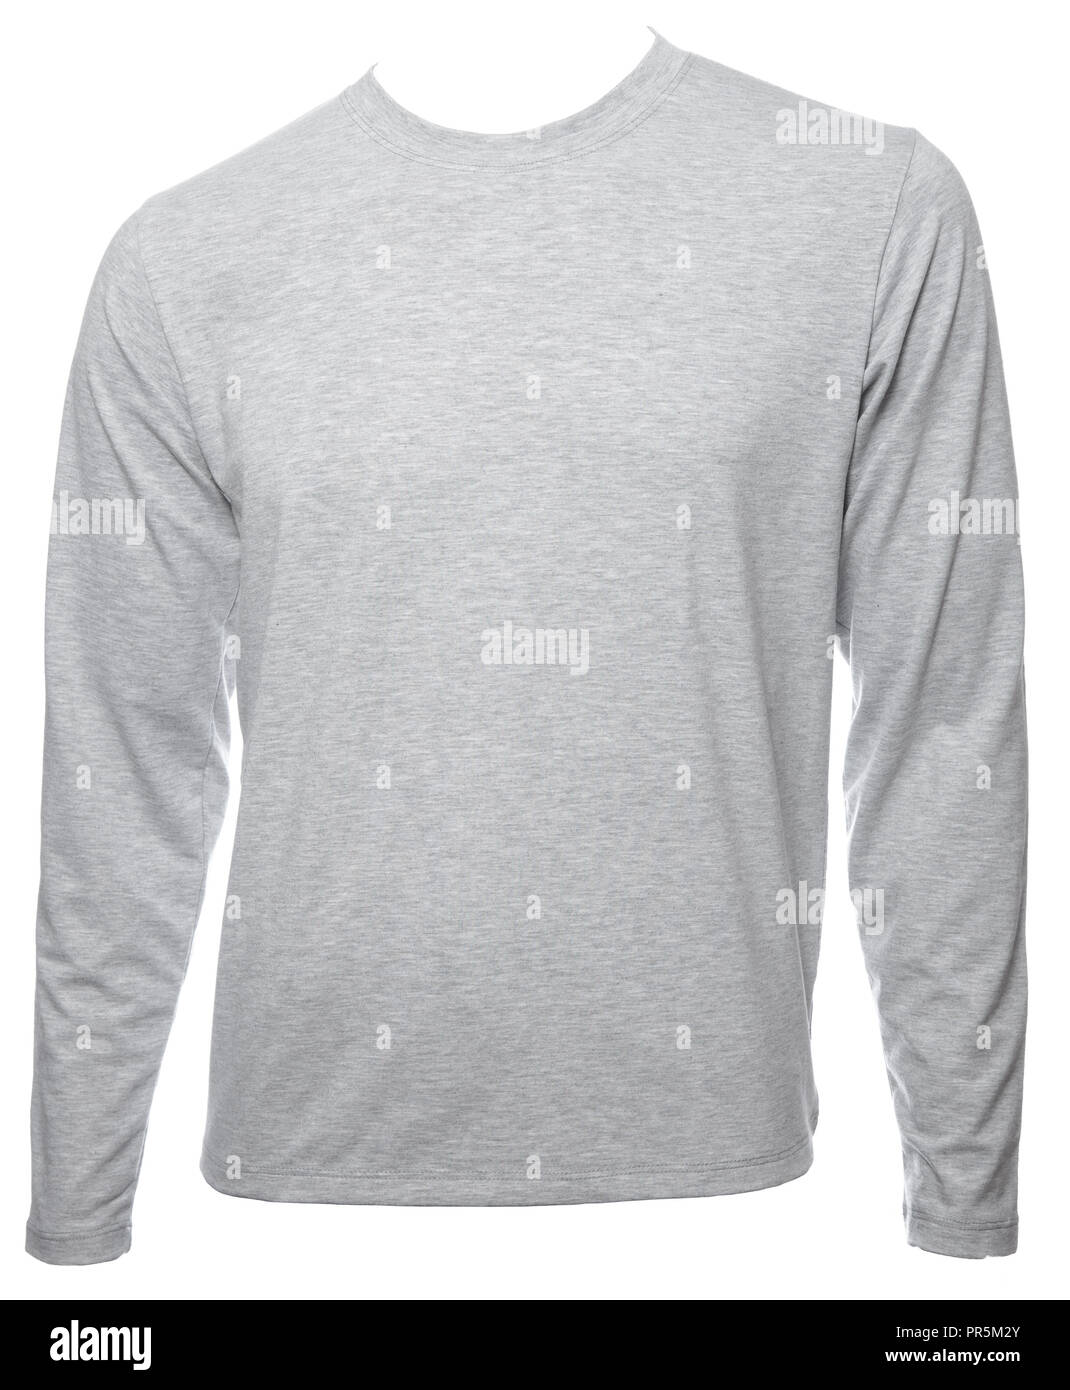 Grey Heathered Plain Long Sleeved Cotton T Shirt Template Isolated On A White Background